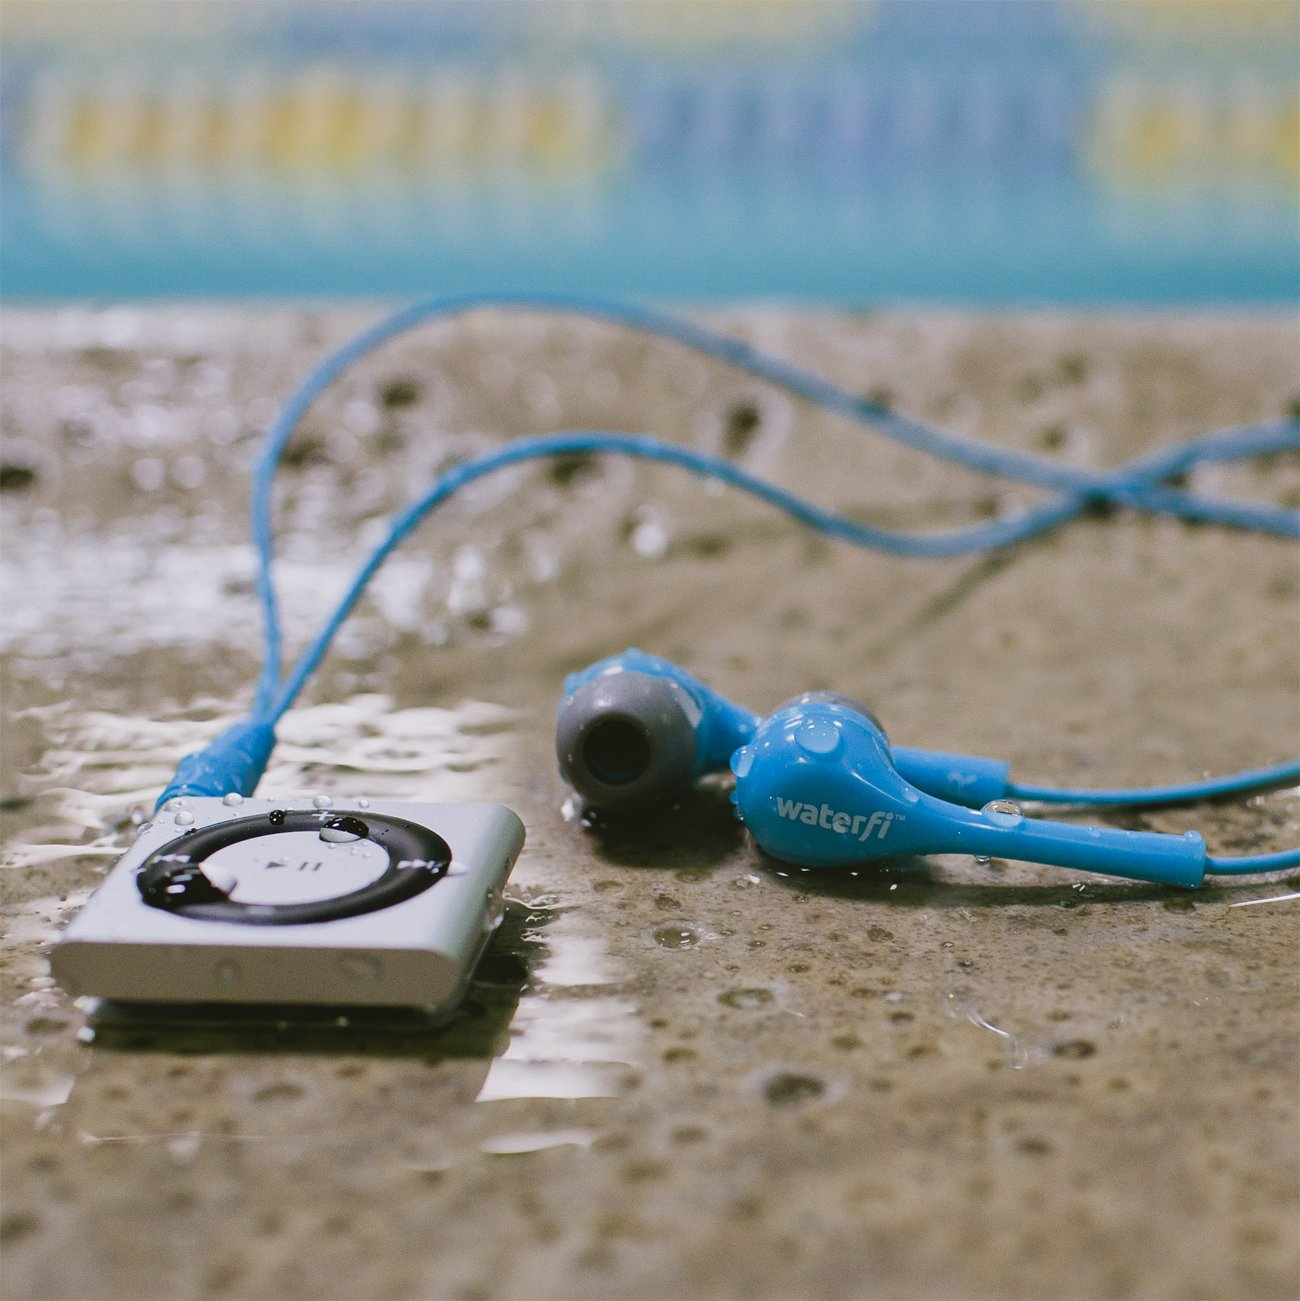 Waterfi--waterproof--ipod